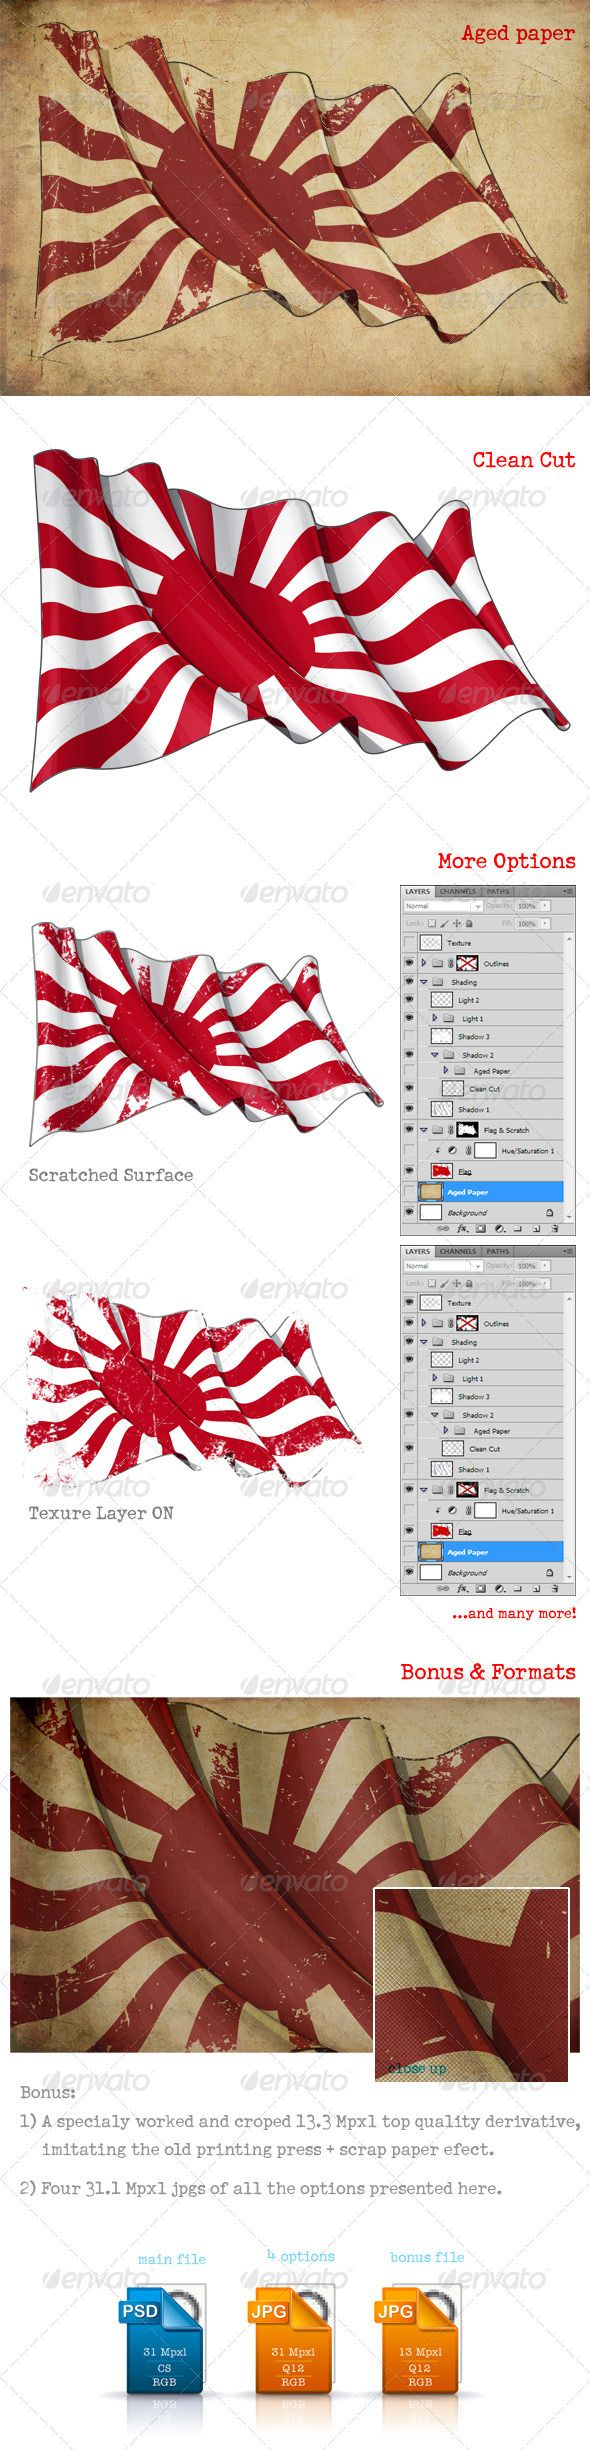 Pics photos desk with flag in background photographic print by - Japan S Imperial Navy Flag